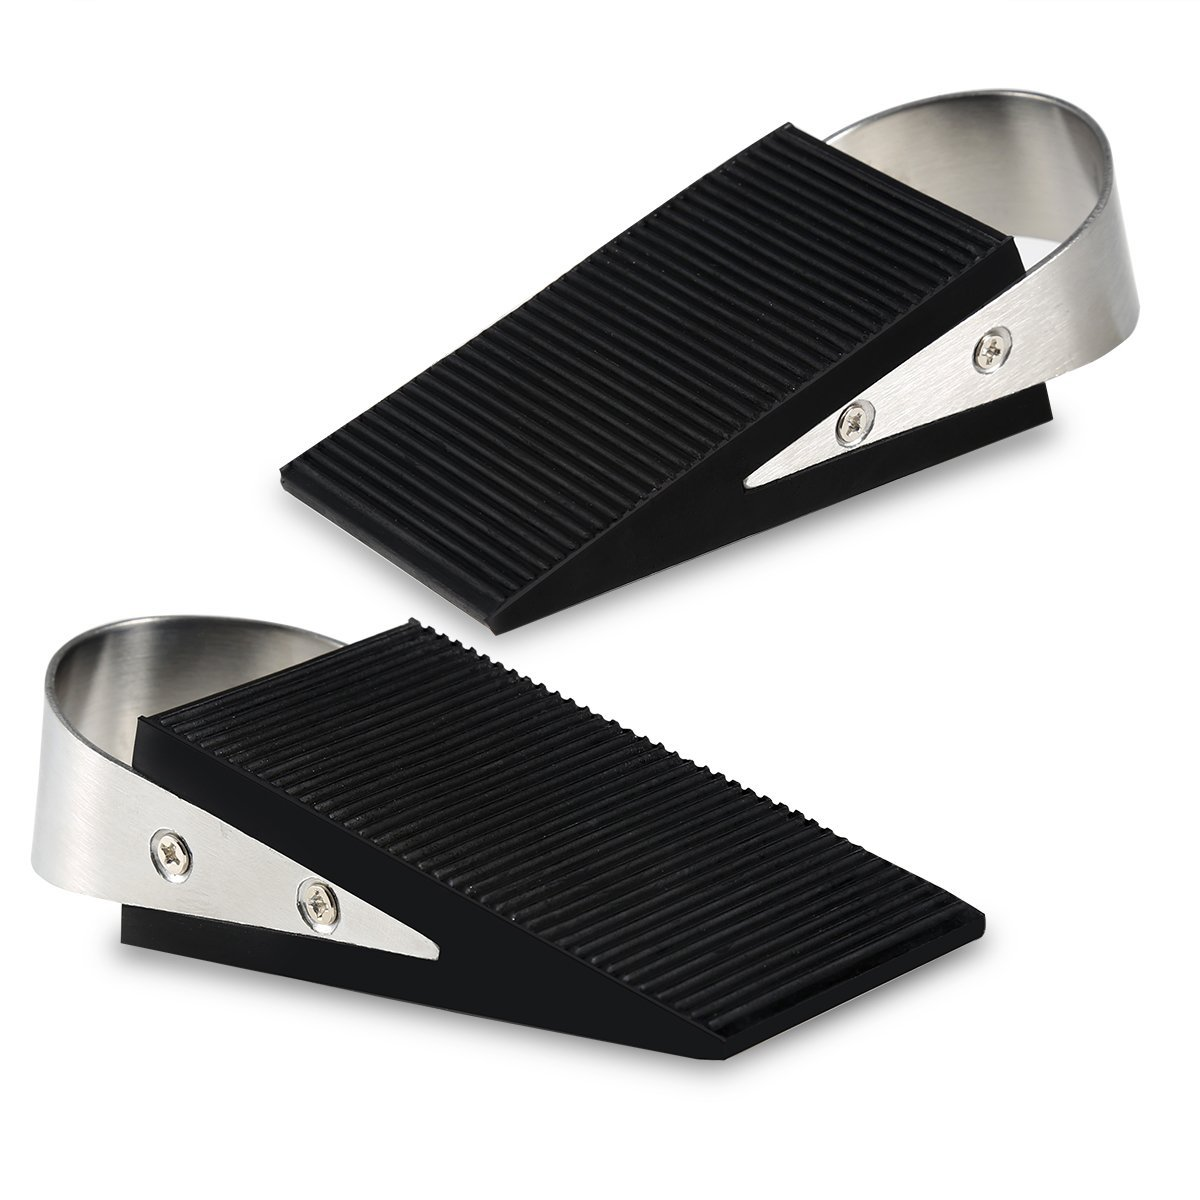 Cade LARGE Rubber Door Stopper 2 Pack with Door Wedge Non-Skid Rubber Office Home  sc 1 st  Walmart & Cade LARGE Rubber Door Stopper 2 Pack with Door Wedge Non-Skid ...